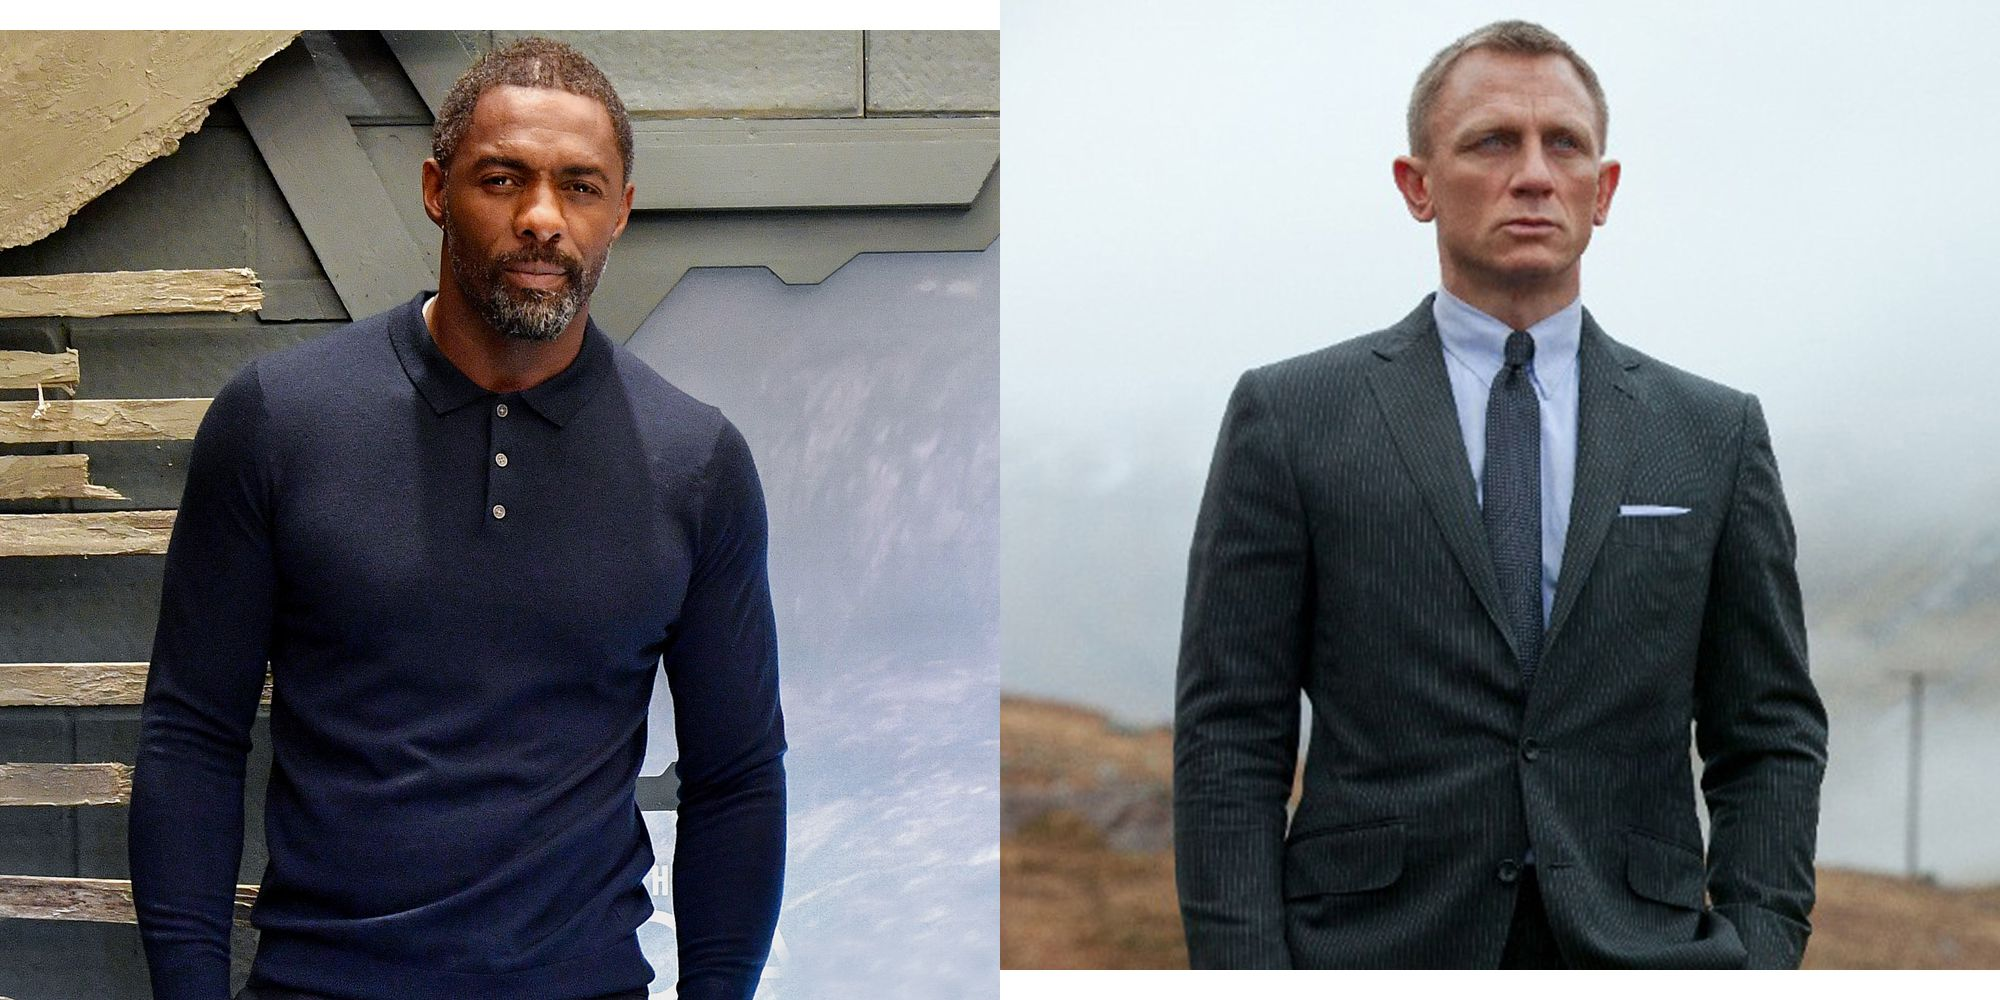 Next James Bond After Daniel Craig